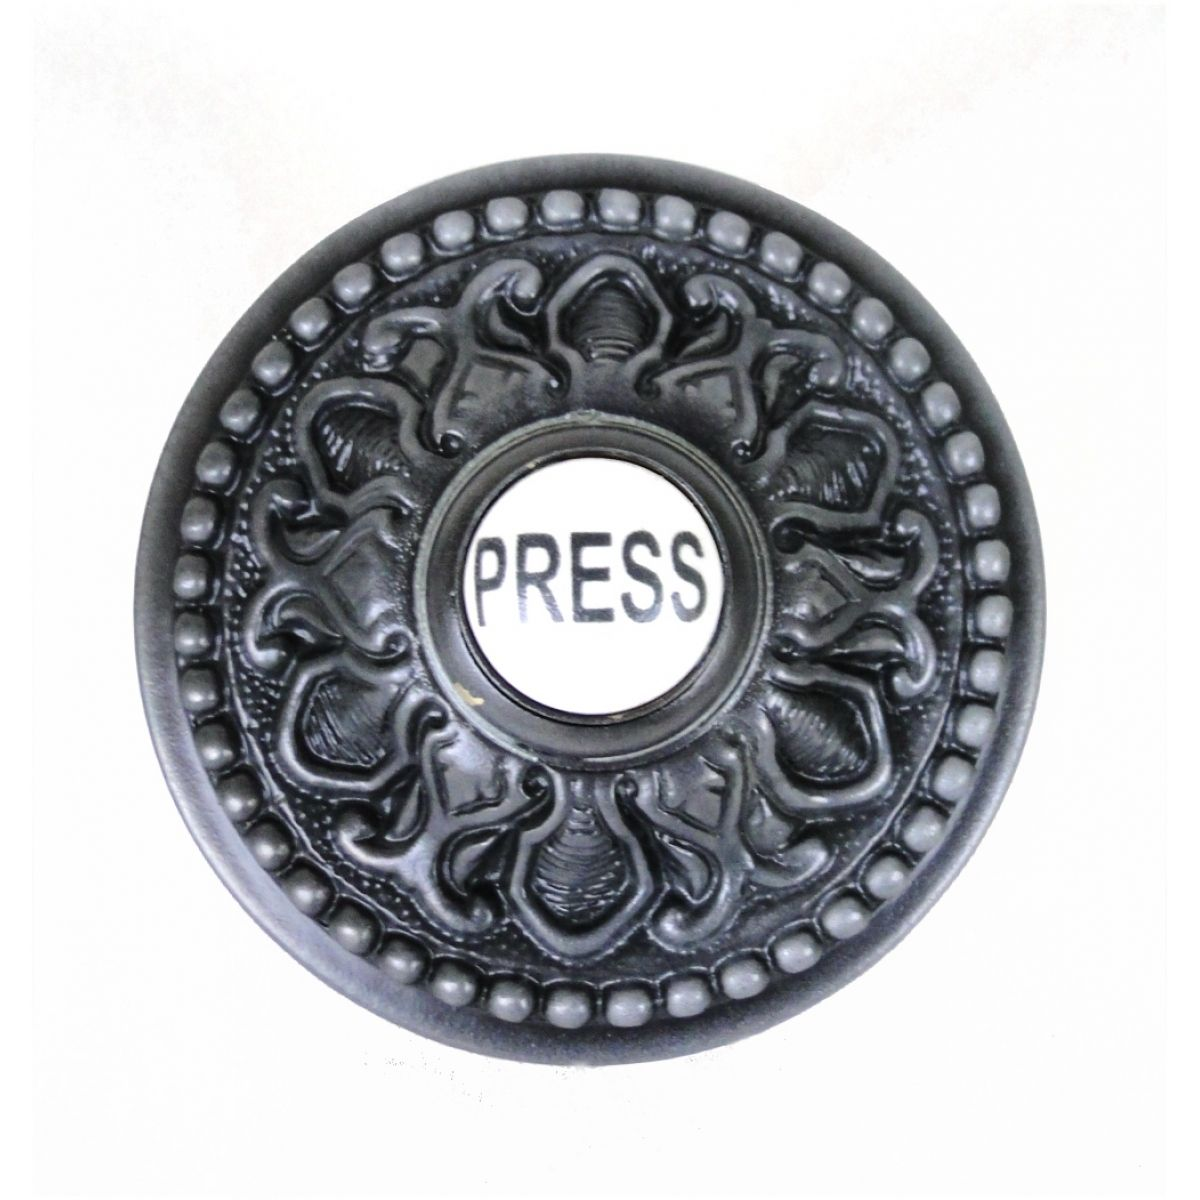 $38 Round PRESS Porcelain Door Bell Button Electric Victorian Solid Brass  Old Style Aged Dark Bronze